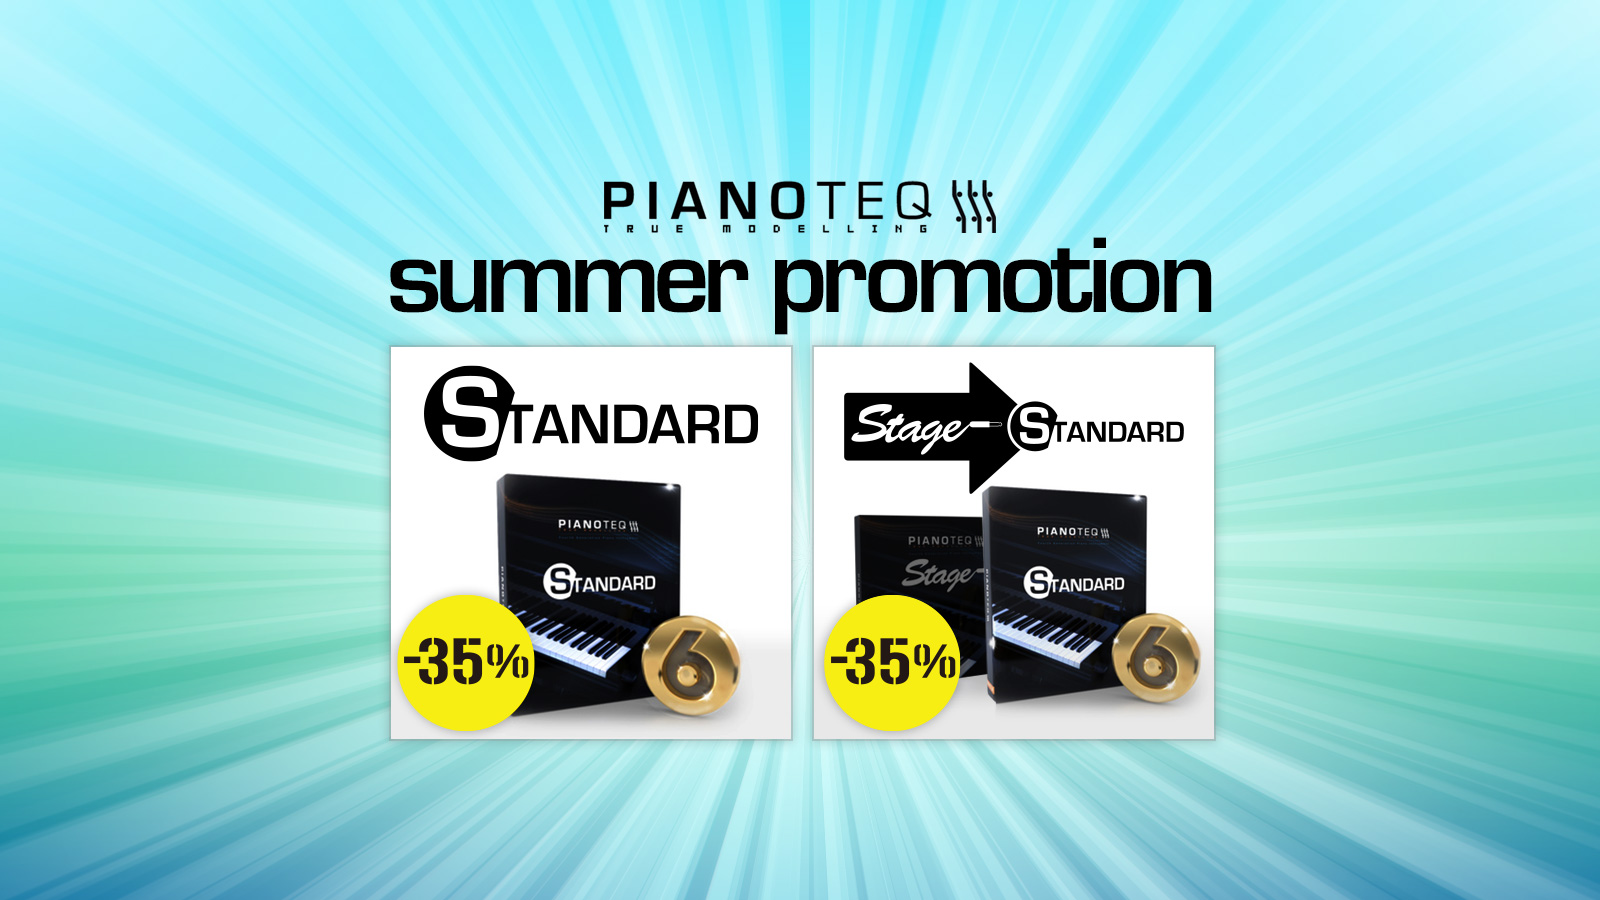 Pianoteq Summer Promotion! Pianoteq 6 Standardが通常盤もアップグレード版も、今だけ35%オフ!